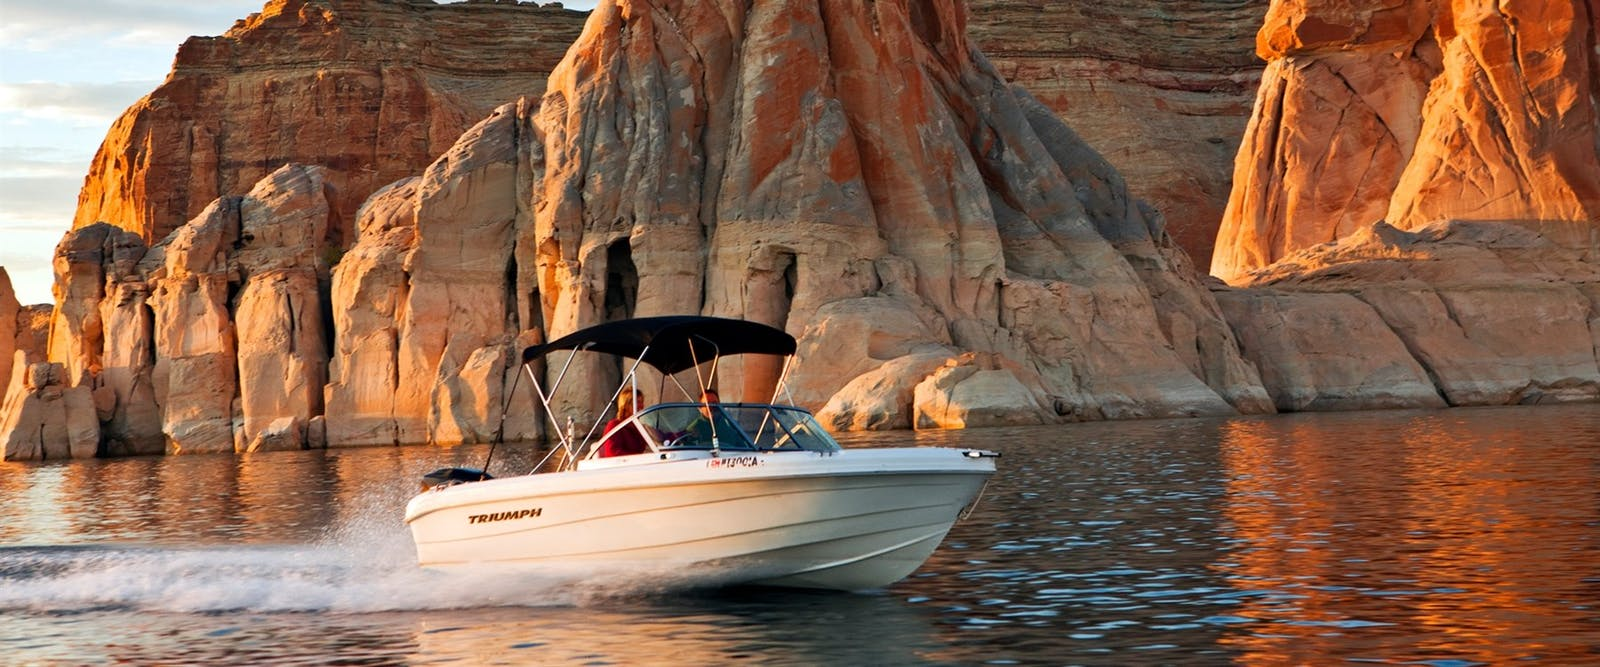 Boat activity at lake powell resort  marina